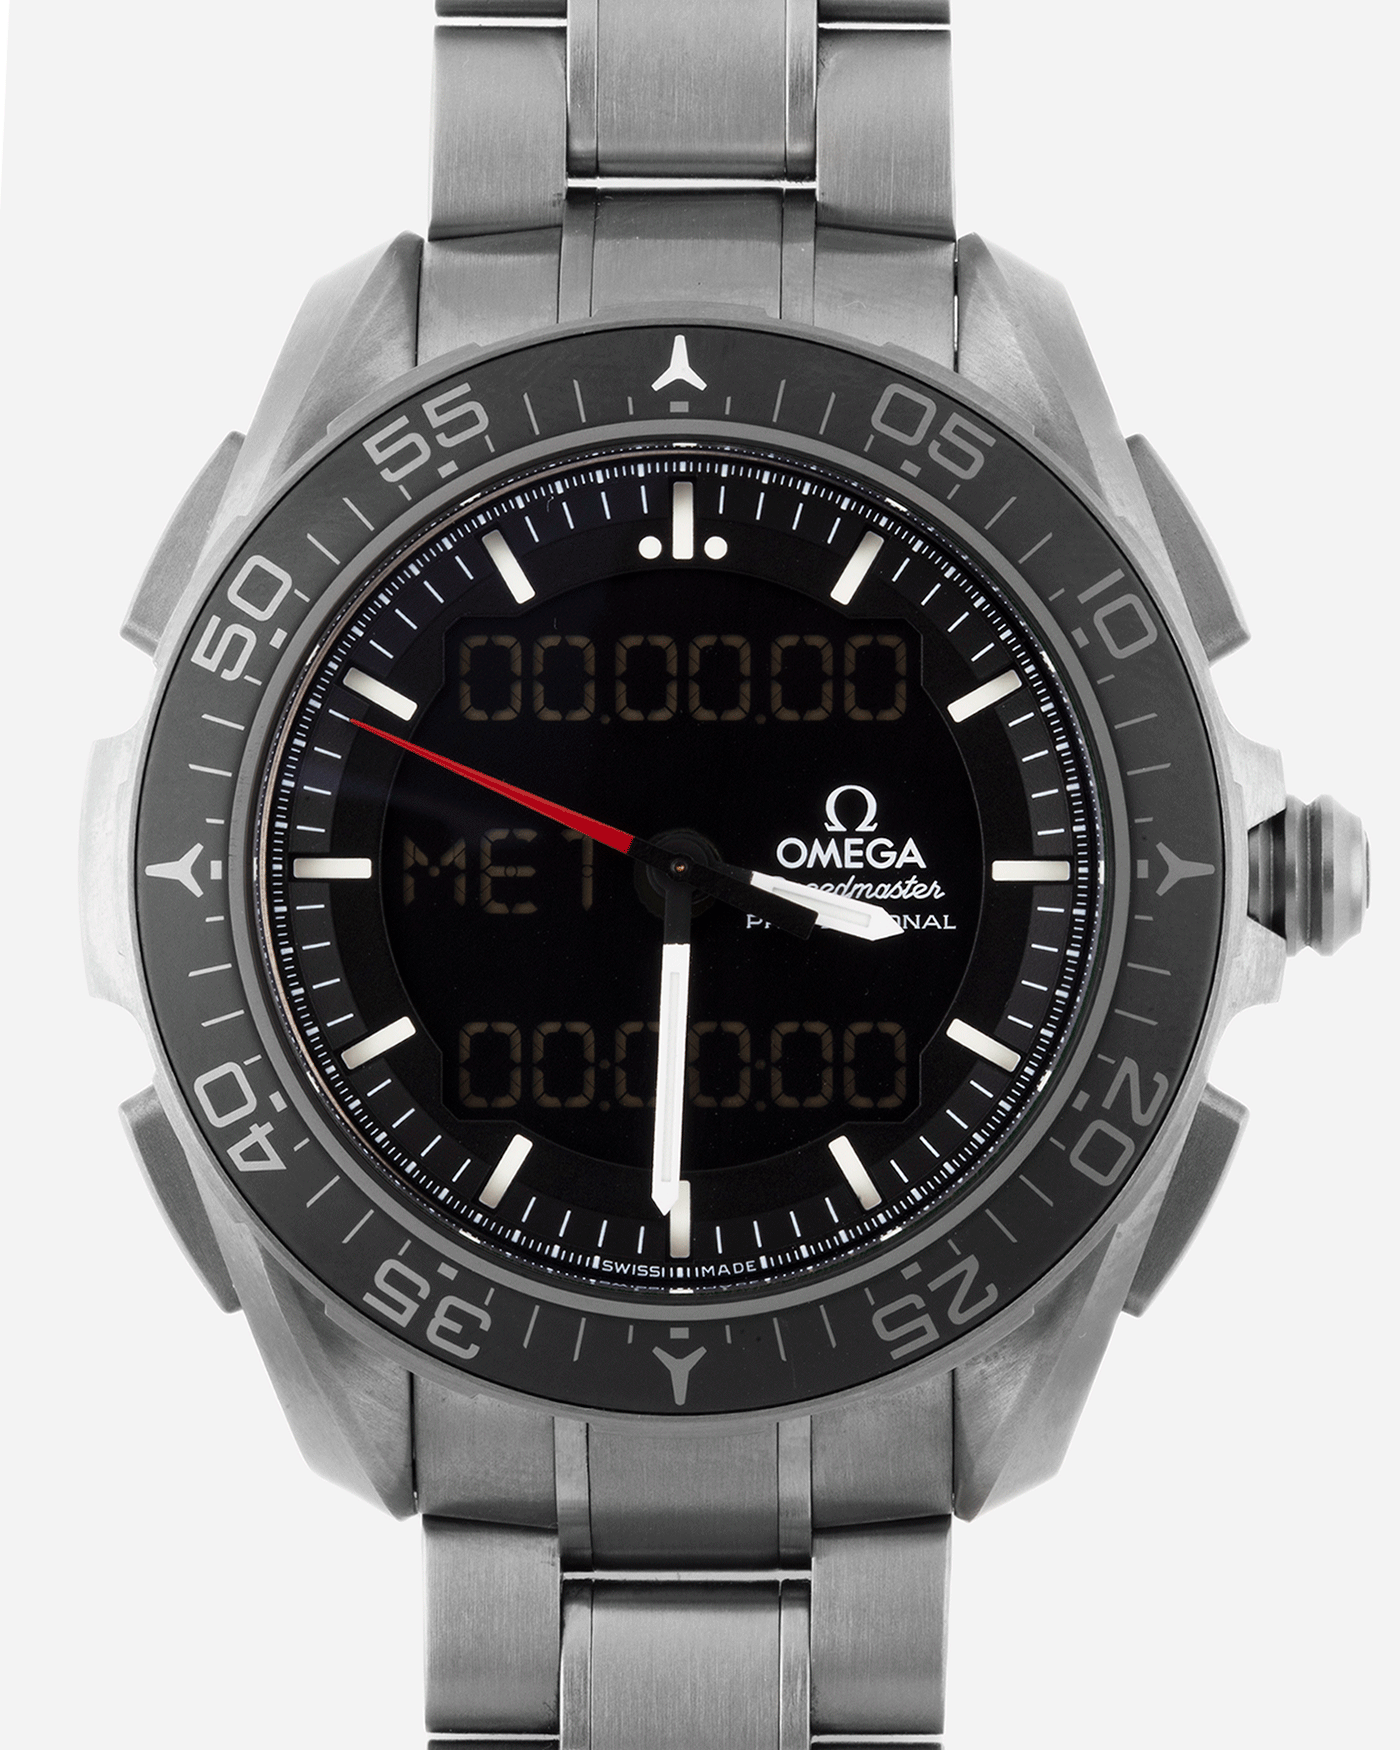 Omega Speedmaster Skywalker X-33 Chronograph Watch | S.Song Vintage Timepieces